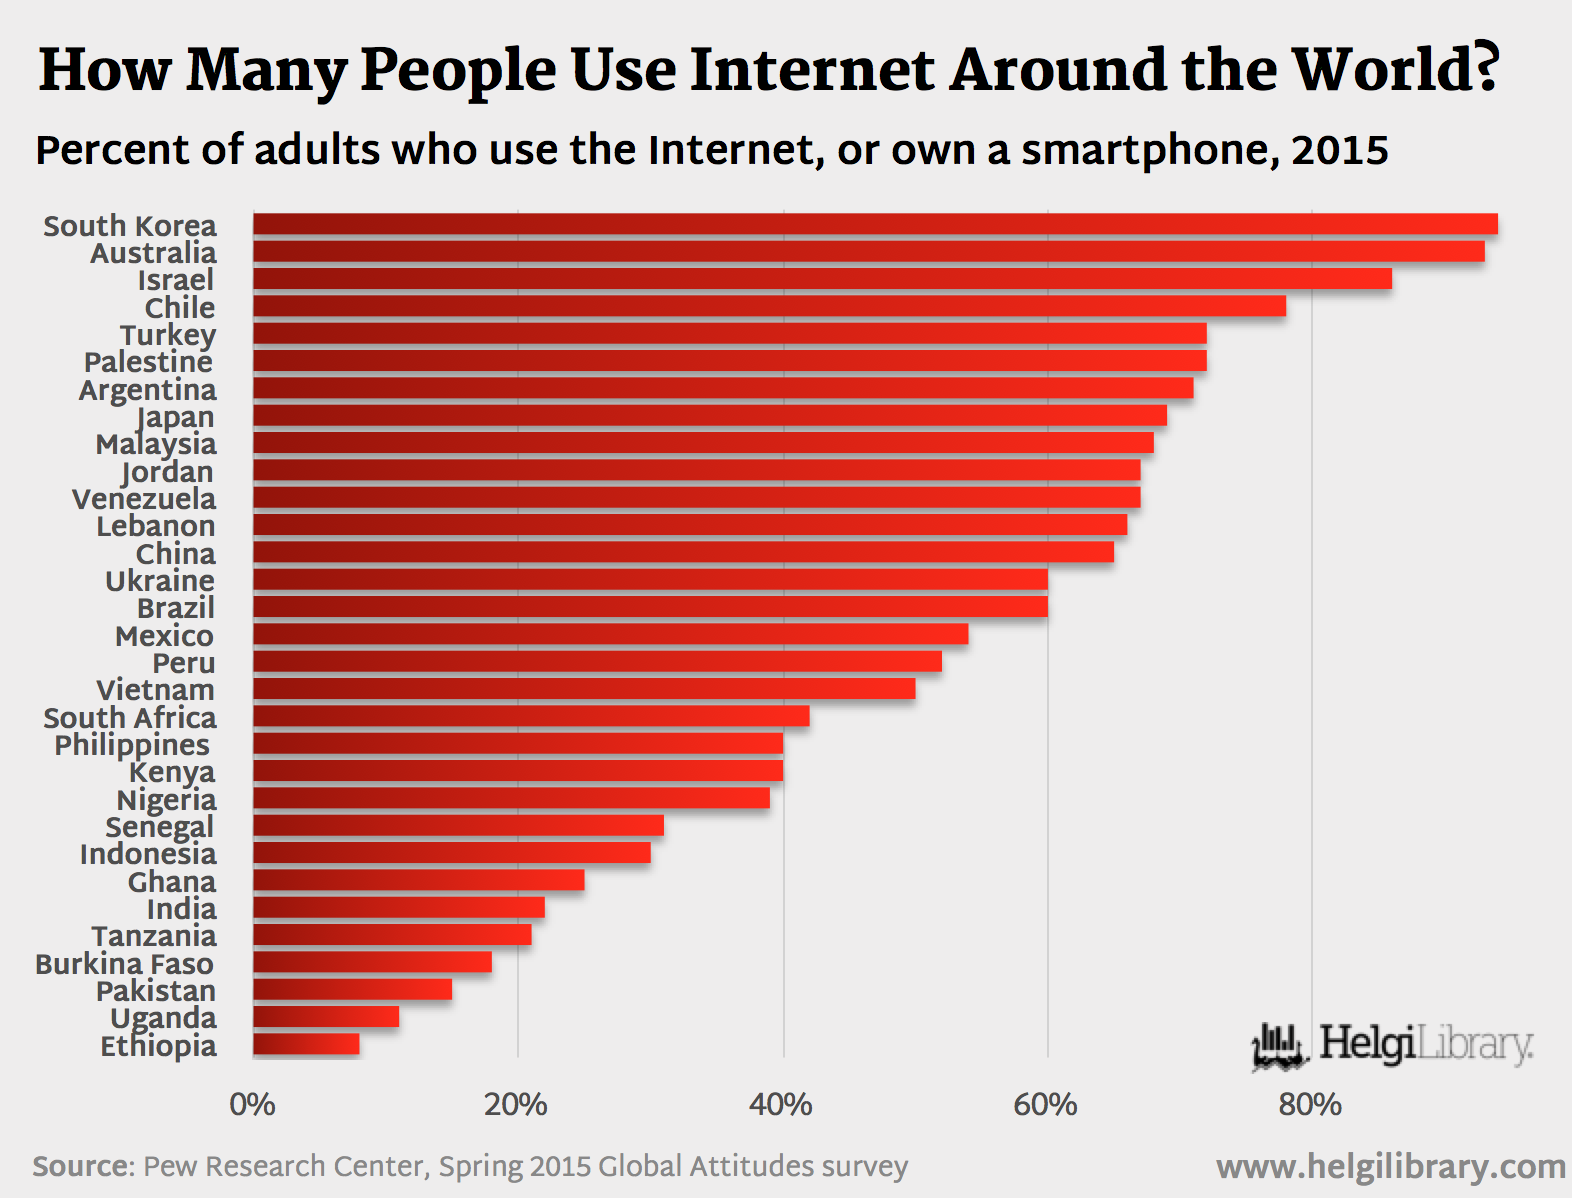 how many people in the world have iphones how many used around the world in 2015 20724